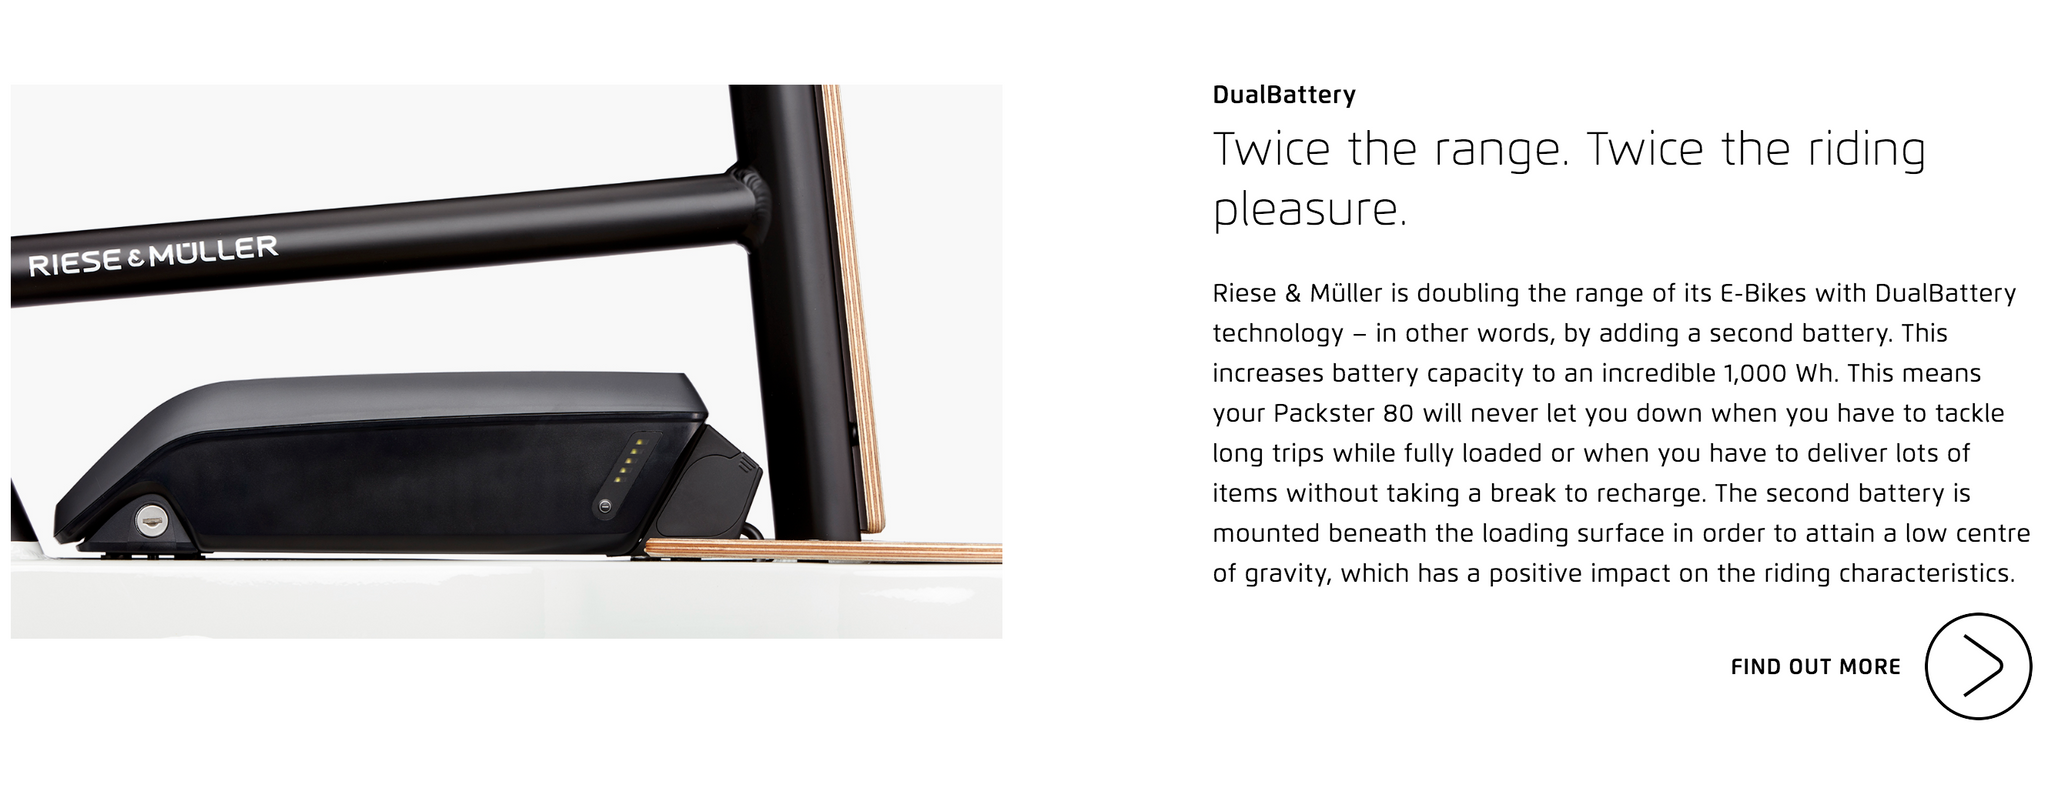 DualBattery  Twice the range. Twice the riding pleasure. Riese & Müller is doubling the range of its E-Bikes with DualBattery technology – in other words, by adding a second battery. This increases battery capacity to an incredible 1,000 Wh. This means your Packster 80 will never let you down when you have to tackle long trips while fully loaded or when you have to deliver lots of items without taking a break to recharge. The second battery is mounted beneath the loading surface in order to attain a low centre of gravity, which has a positive impact on the riding characteristics.